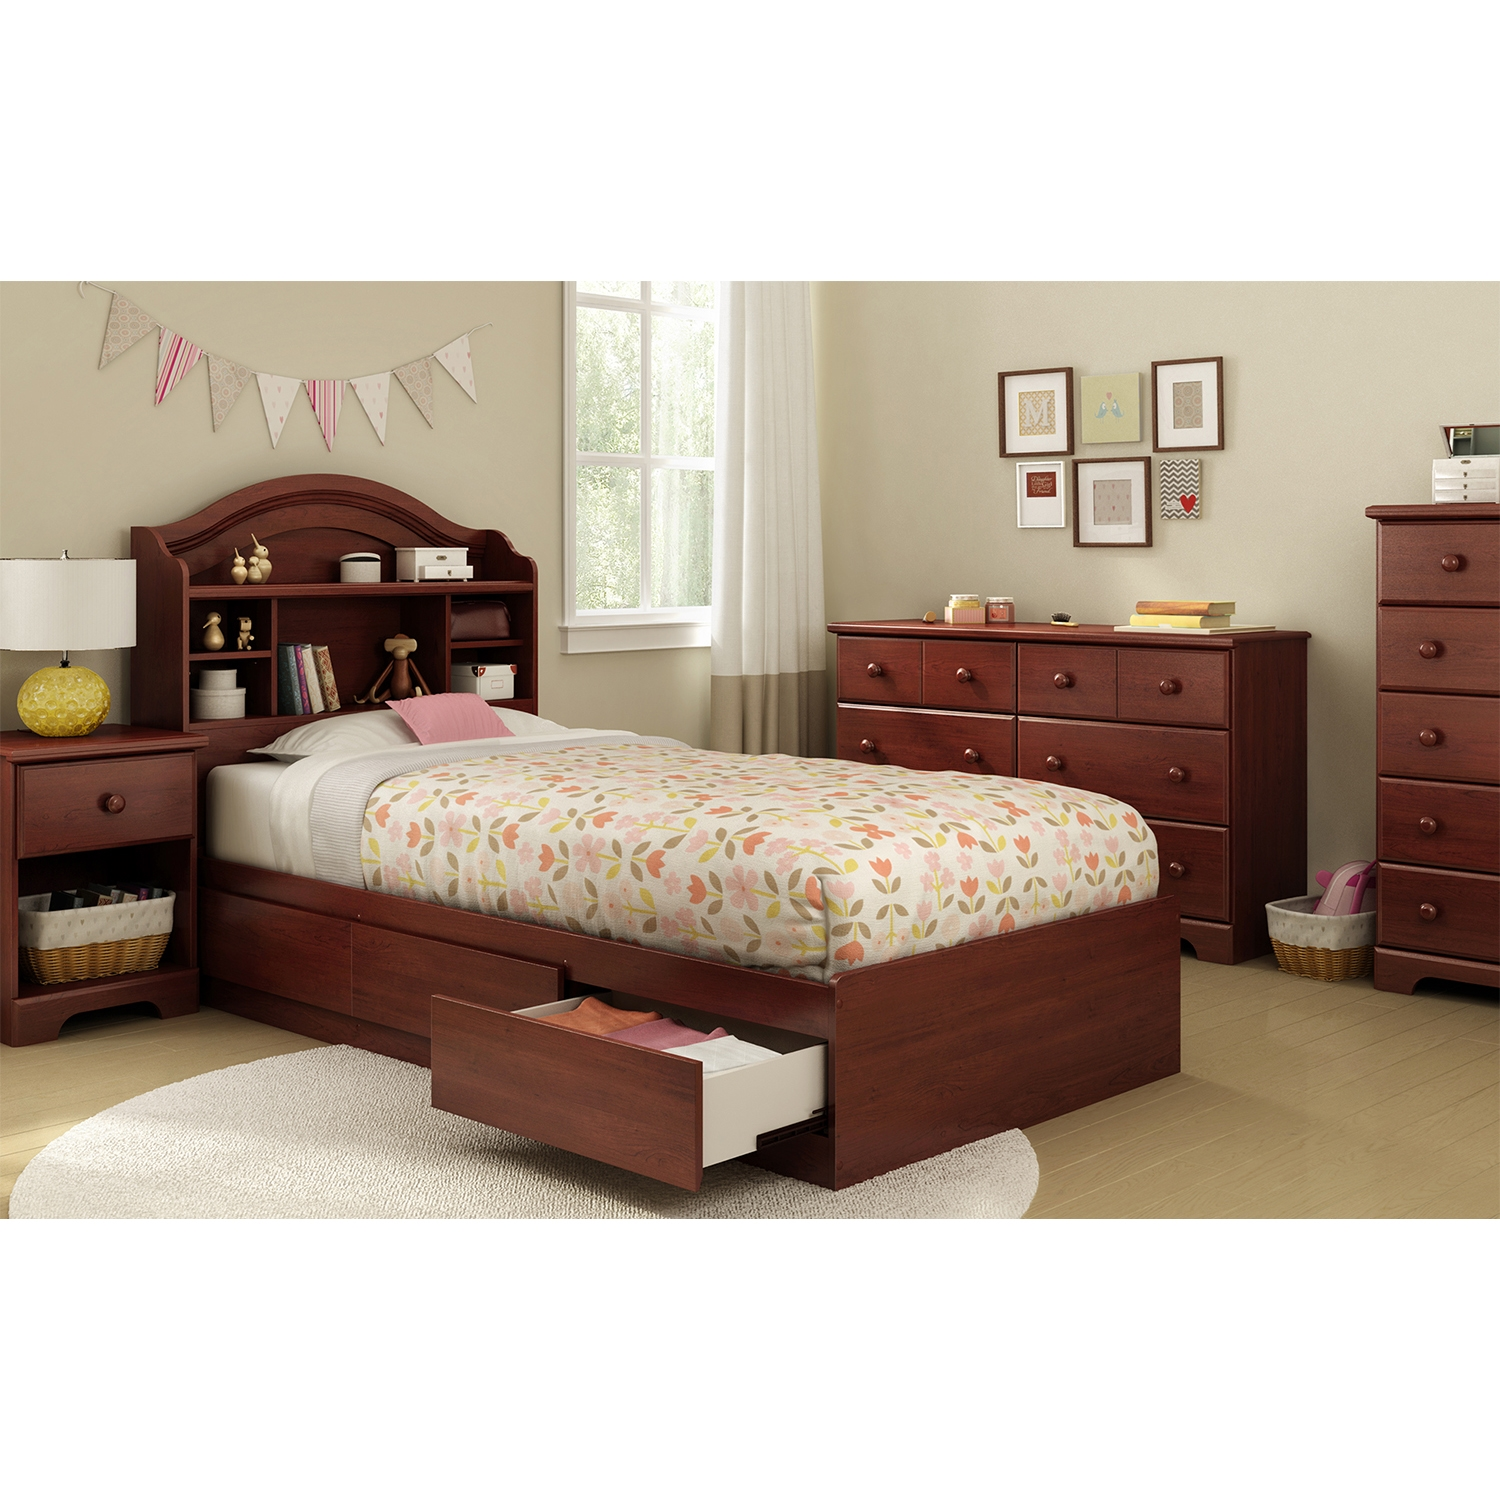 Summer Breeze 1 Drawer Nightstand - Royal Cherry - SS-3746062